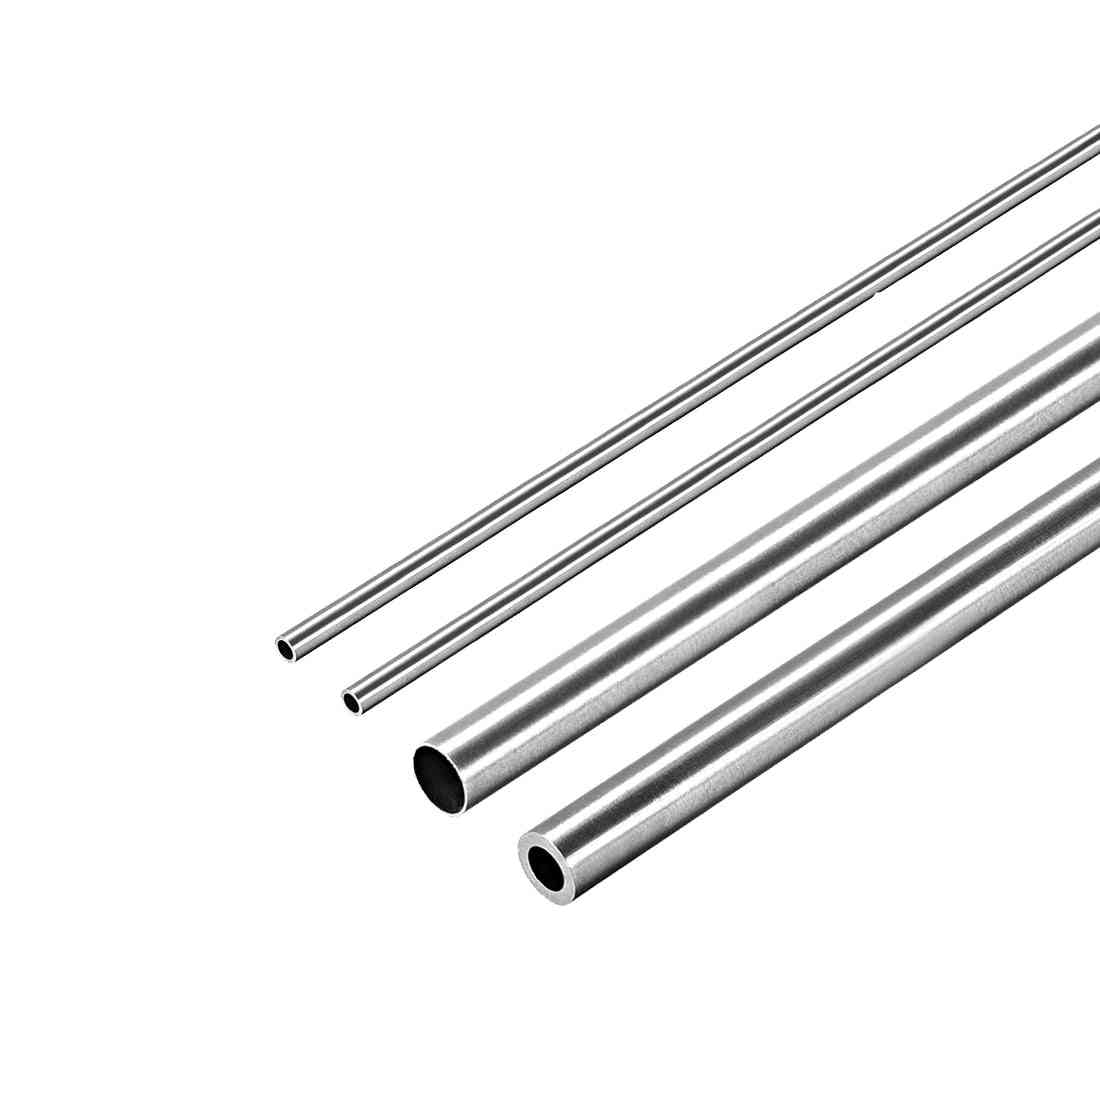 Stainless Steel Round, Seamless Straight Pipes